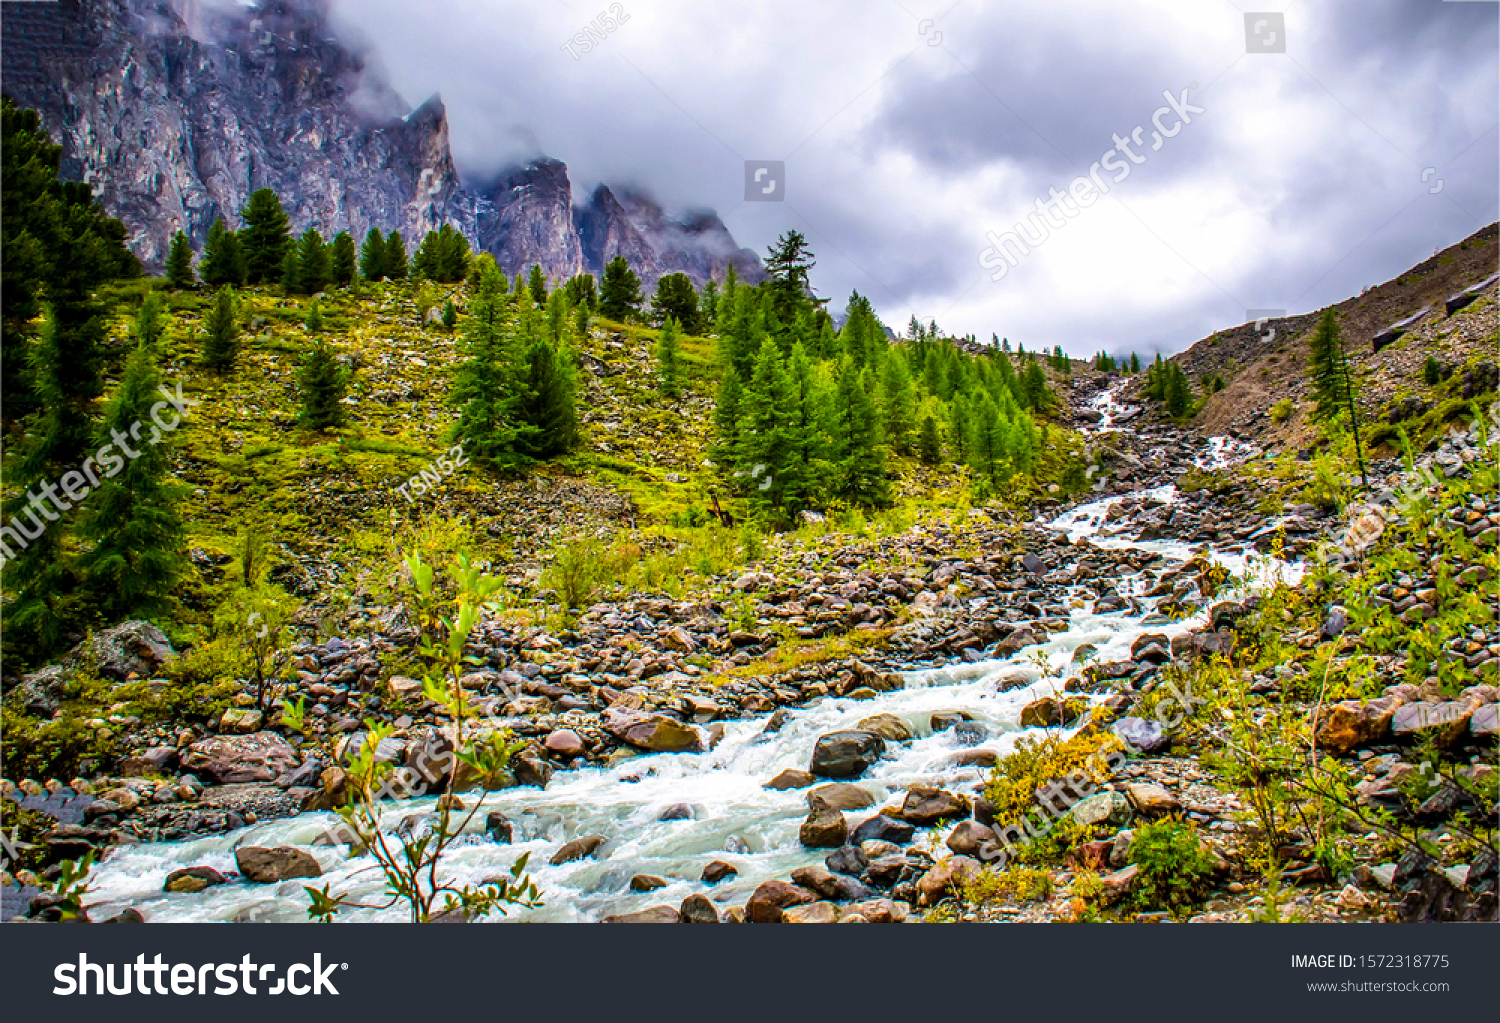 Mountain valley river stream landscape. River stream in mountains. Mountain river stream landscape. Mountain river stream valley #1572318775